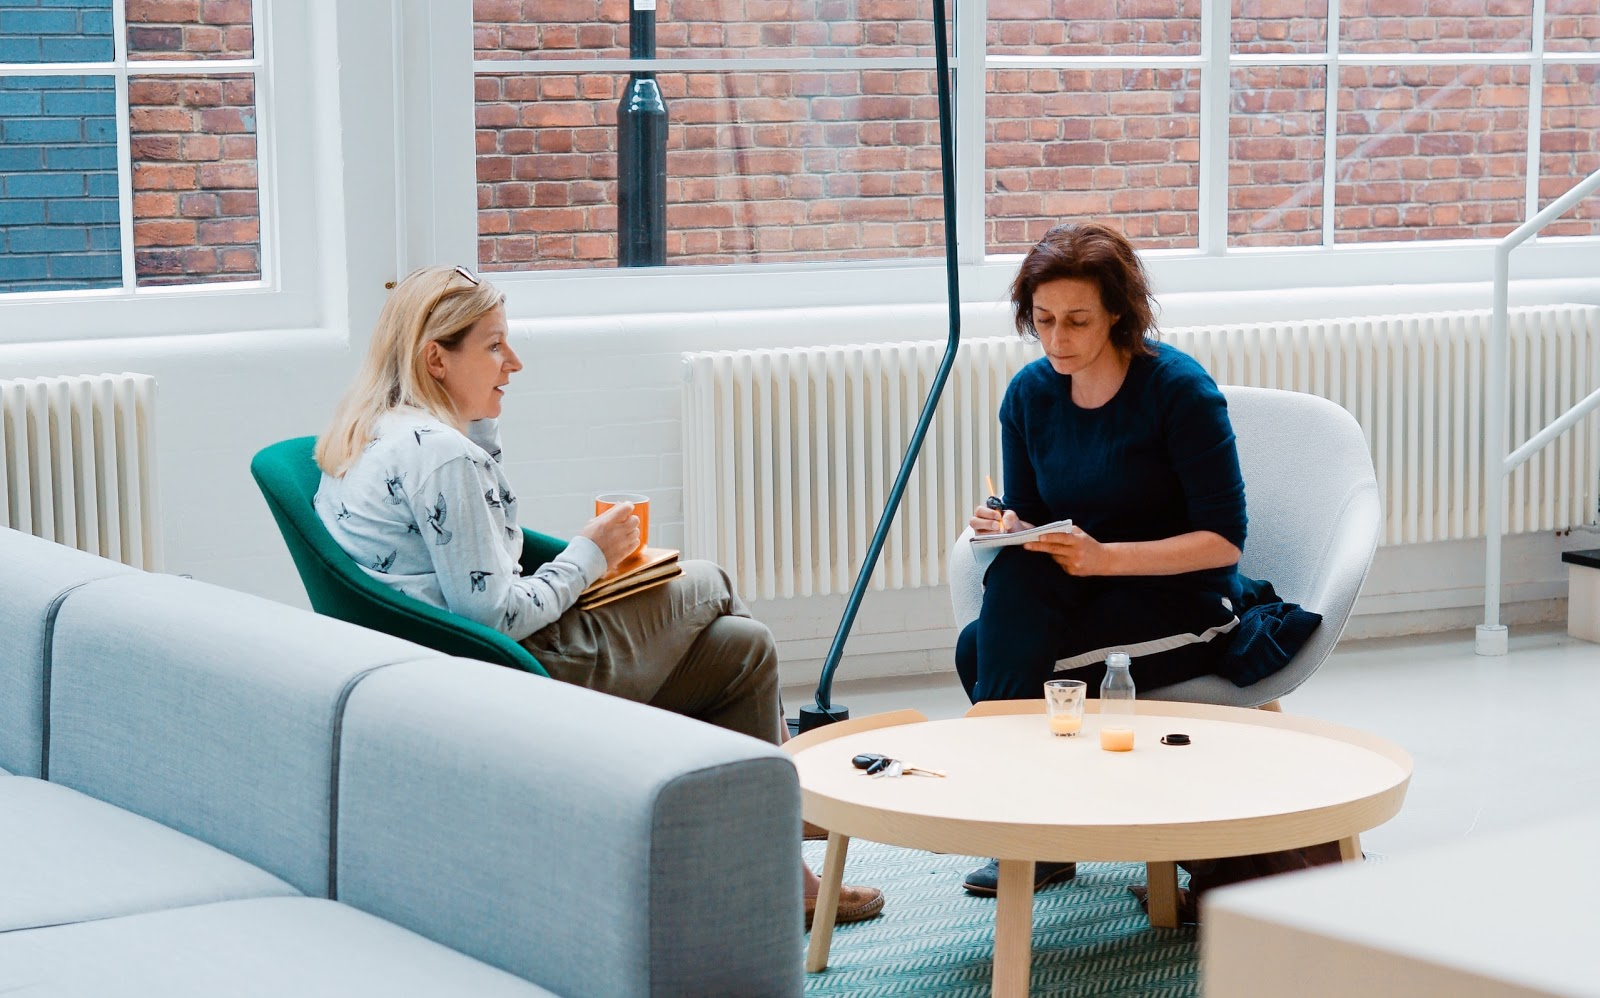 two woman sit on sofa chairs inside home studying